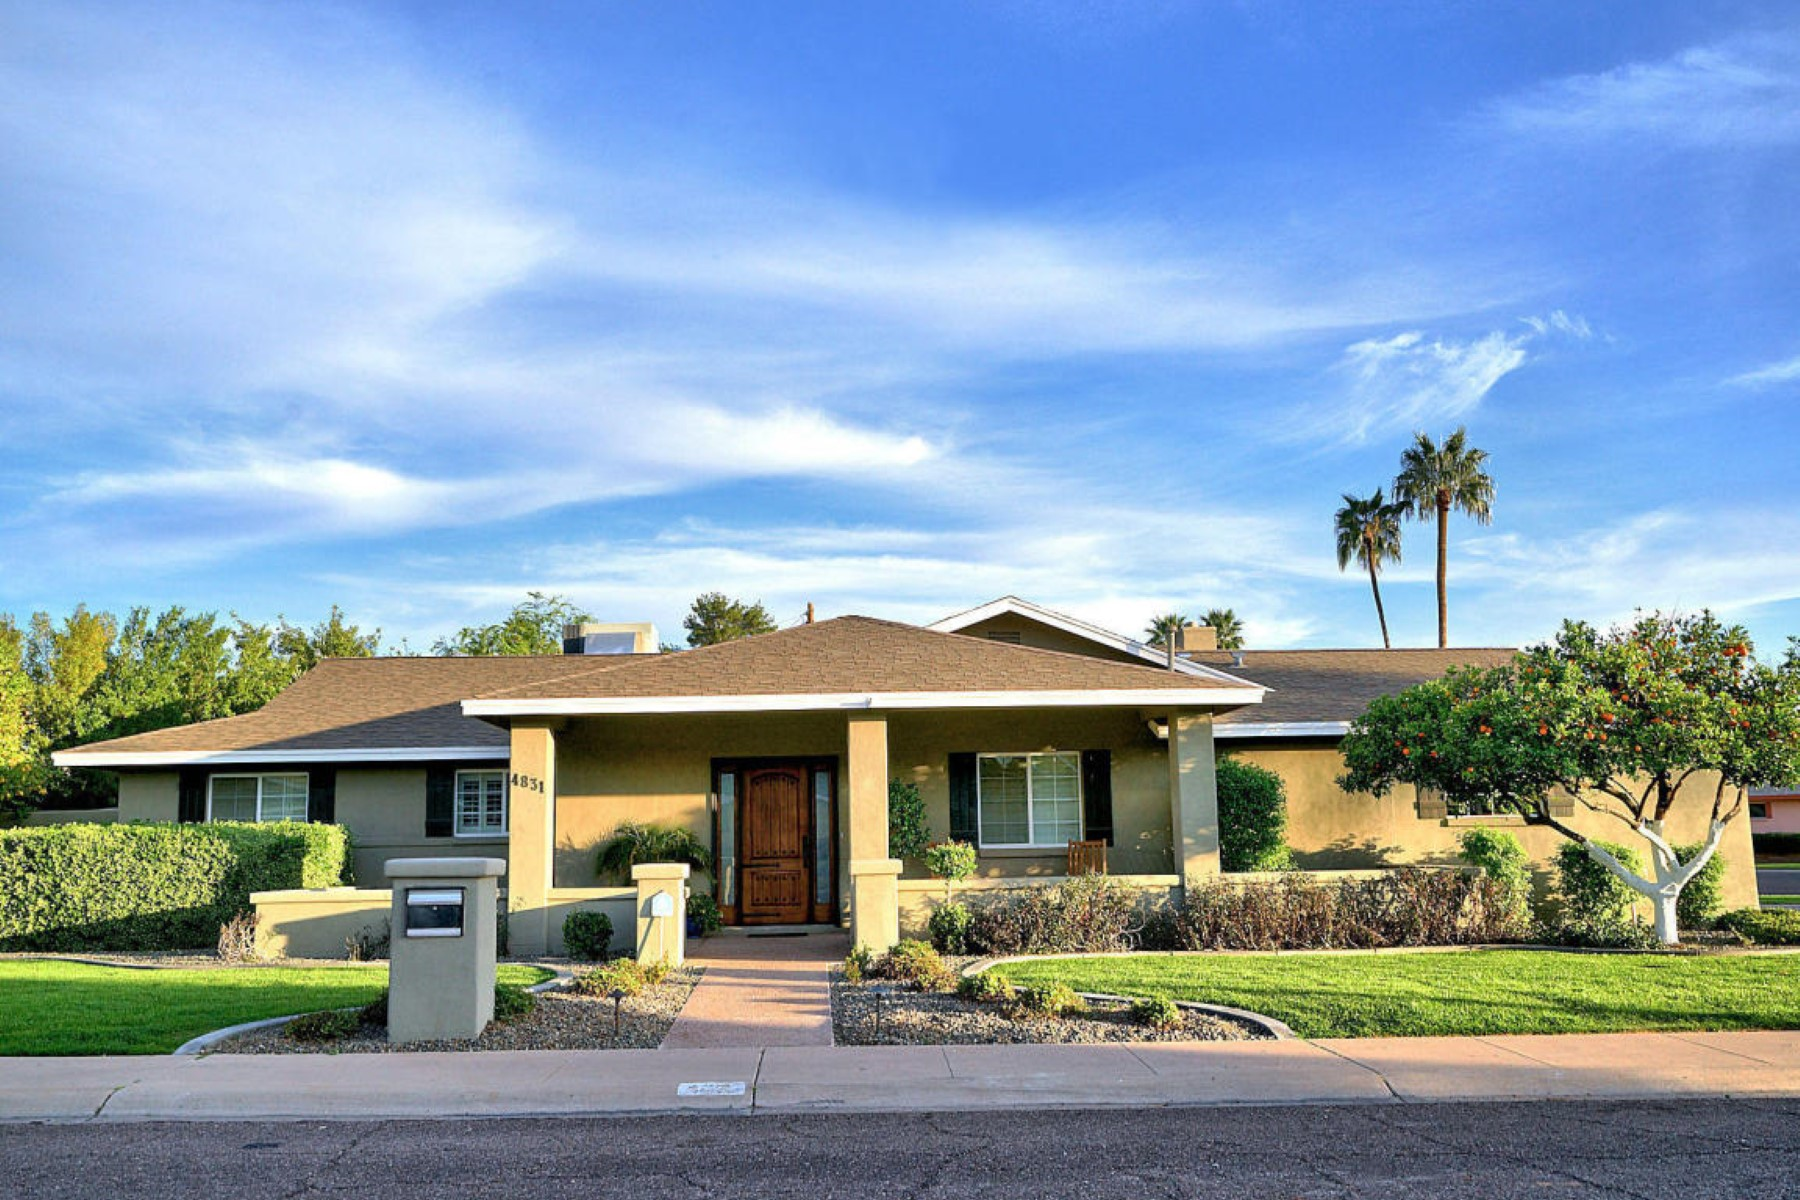 獨棟家庭住宅 為 出售 在 Charming home is located in the highly sought-after Arcadia neighborhood 4831 North 42nd Place Phoenix, 亞利桑那州, 85018 美國